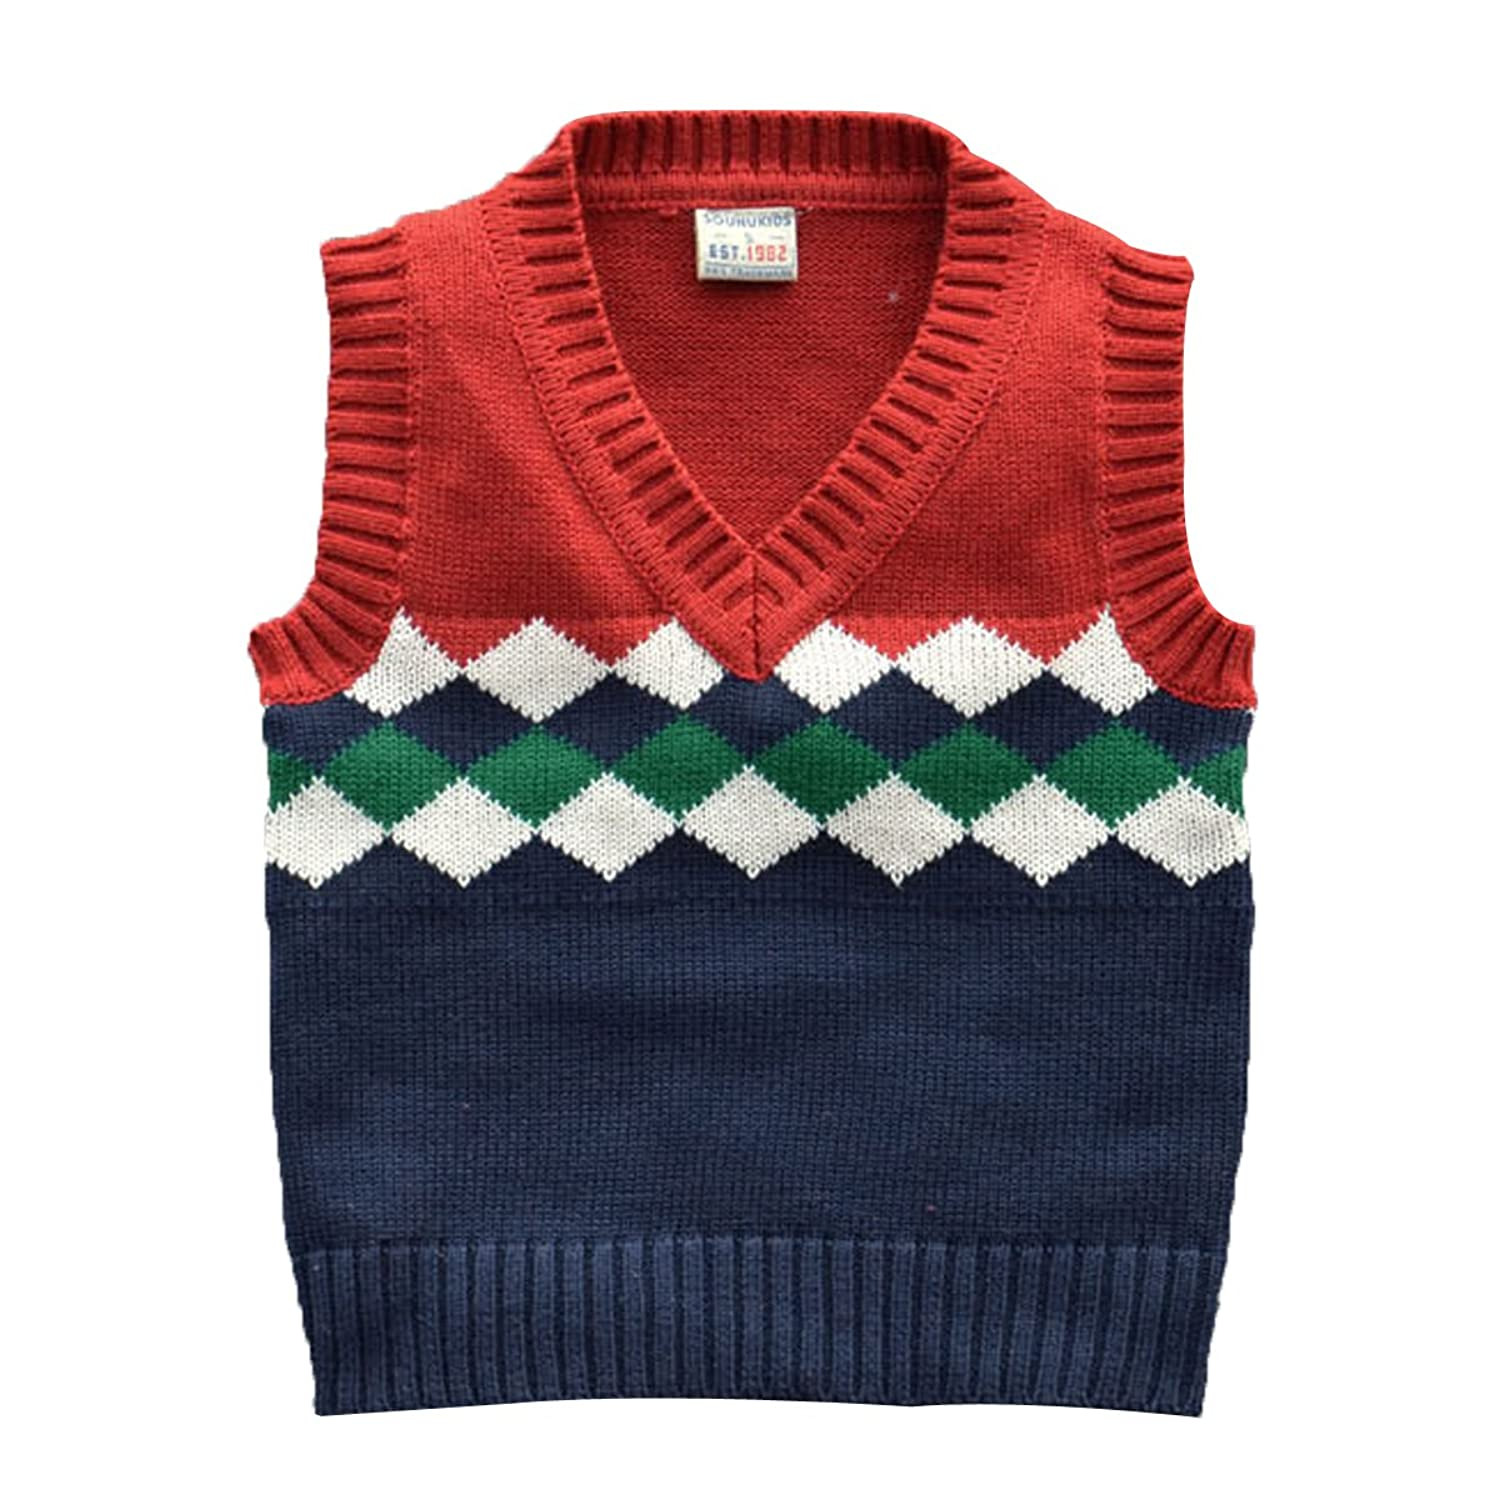 1930s Childrens Fashion: Girls, Boys, Toddler, Baby Costumes Boys School Uniform Cable Front Color Block Sweater Vest Clothing Activewear $18.79 AT vintagedancer.com